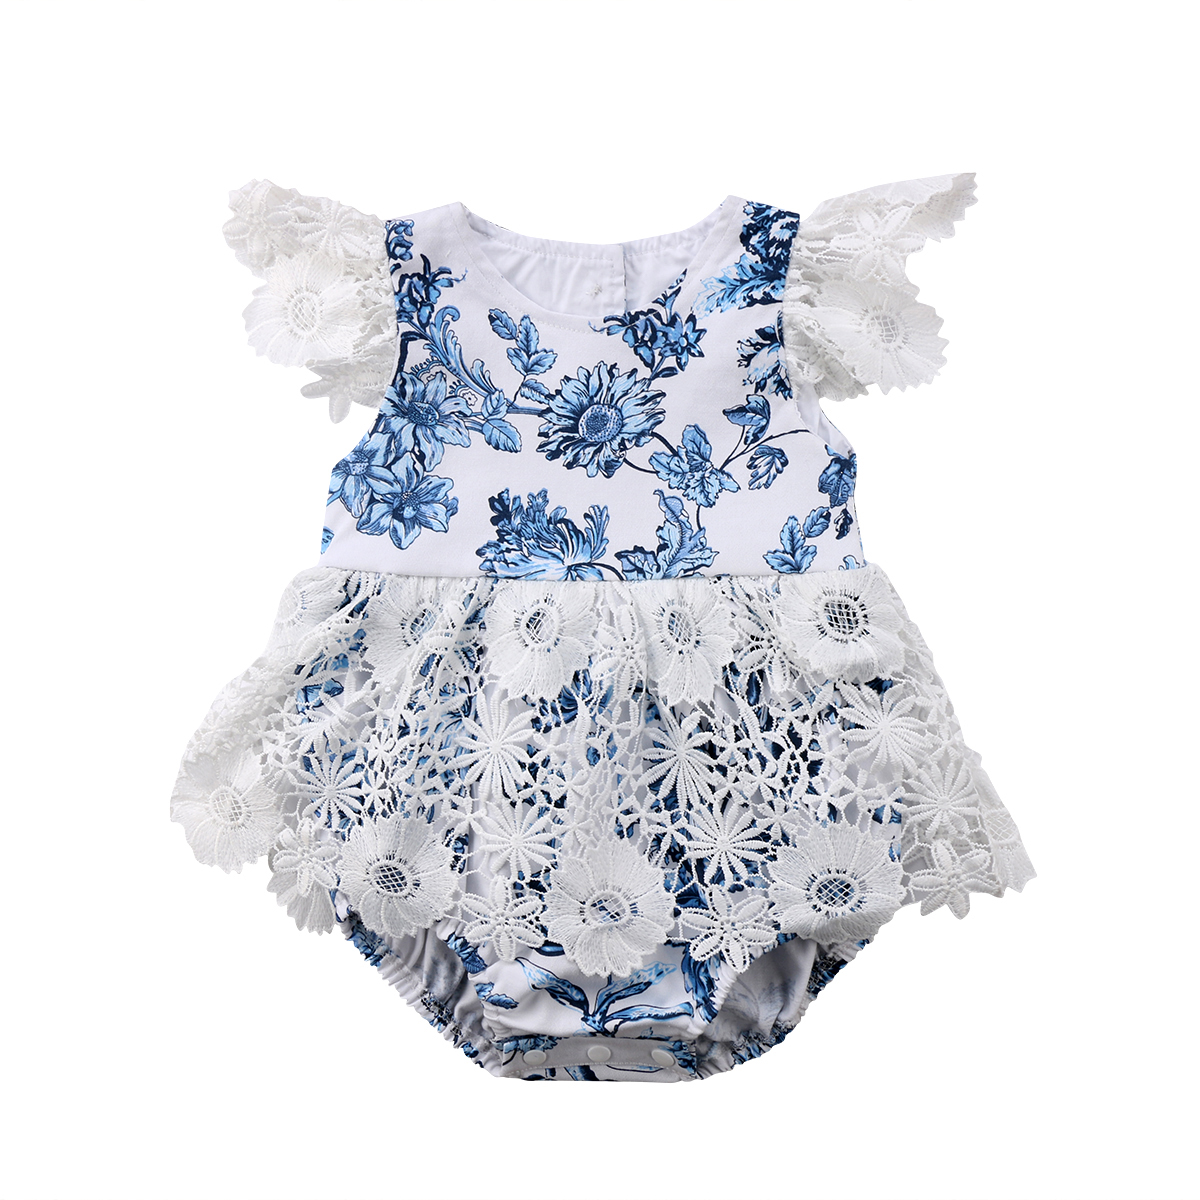 2018 Newborn Baby Girl Short Sleeve Romper Lace Floral Jumpsuit Outfit Flower Summer Clothes 0-24M